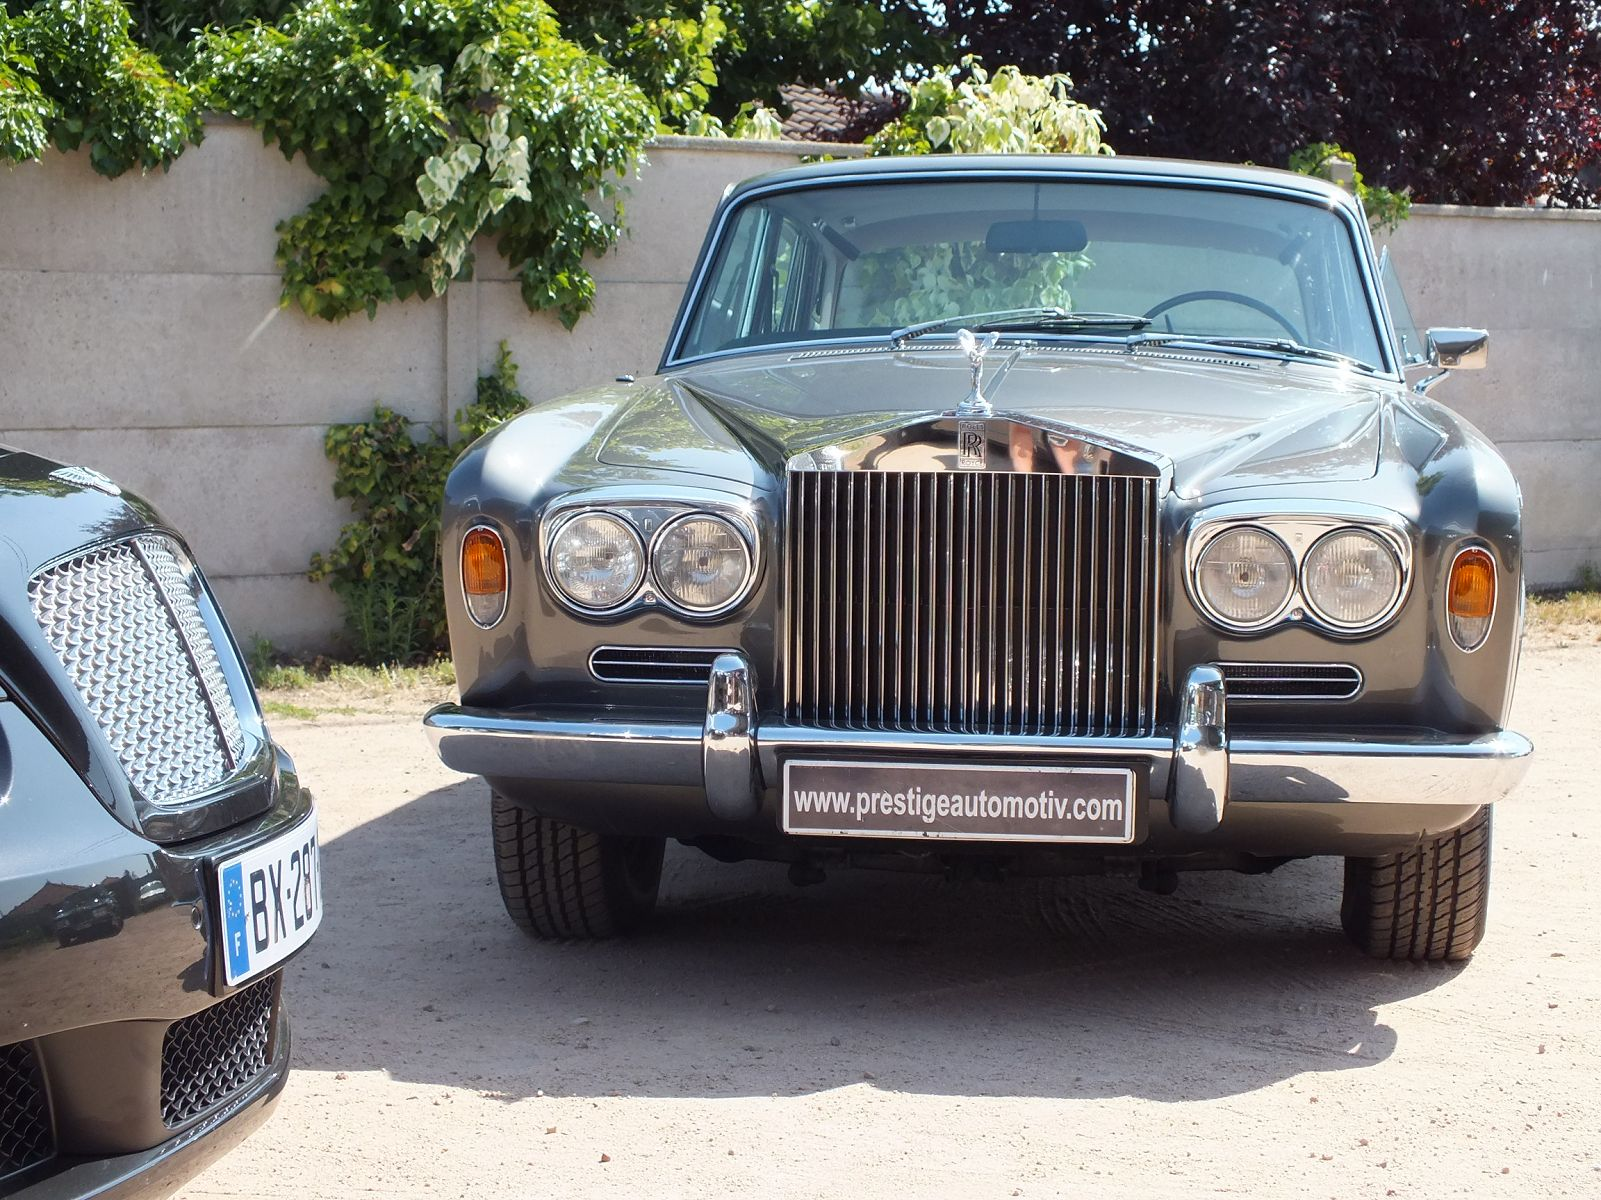 Rolls Royce Silver Shadow I 1968